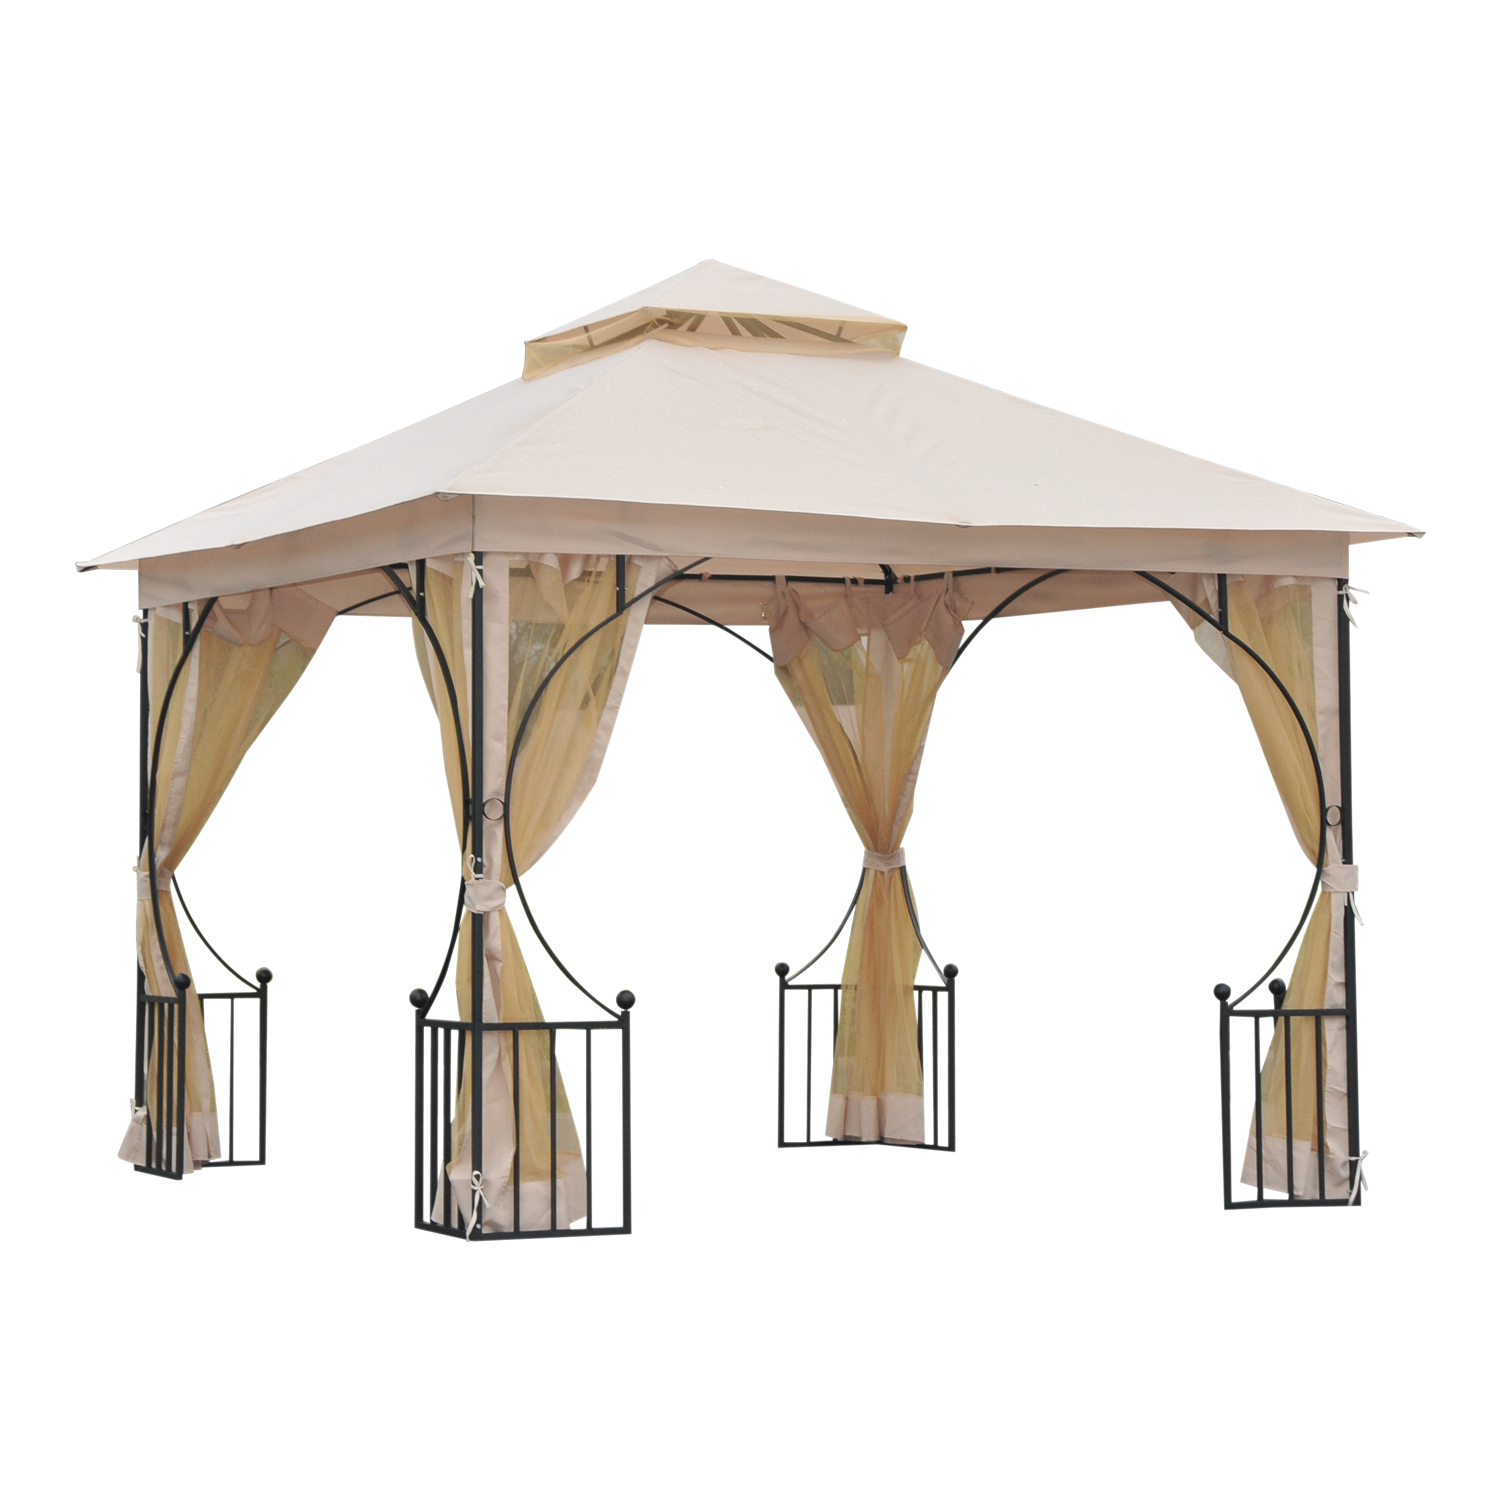 Outsunny 10 ft. 2-Tier Steel Gazebo with Mosquito Netting